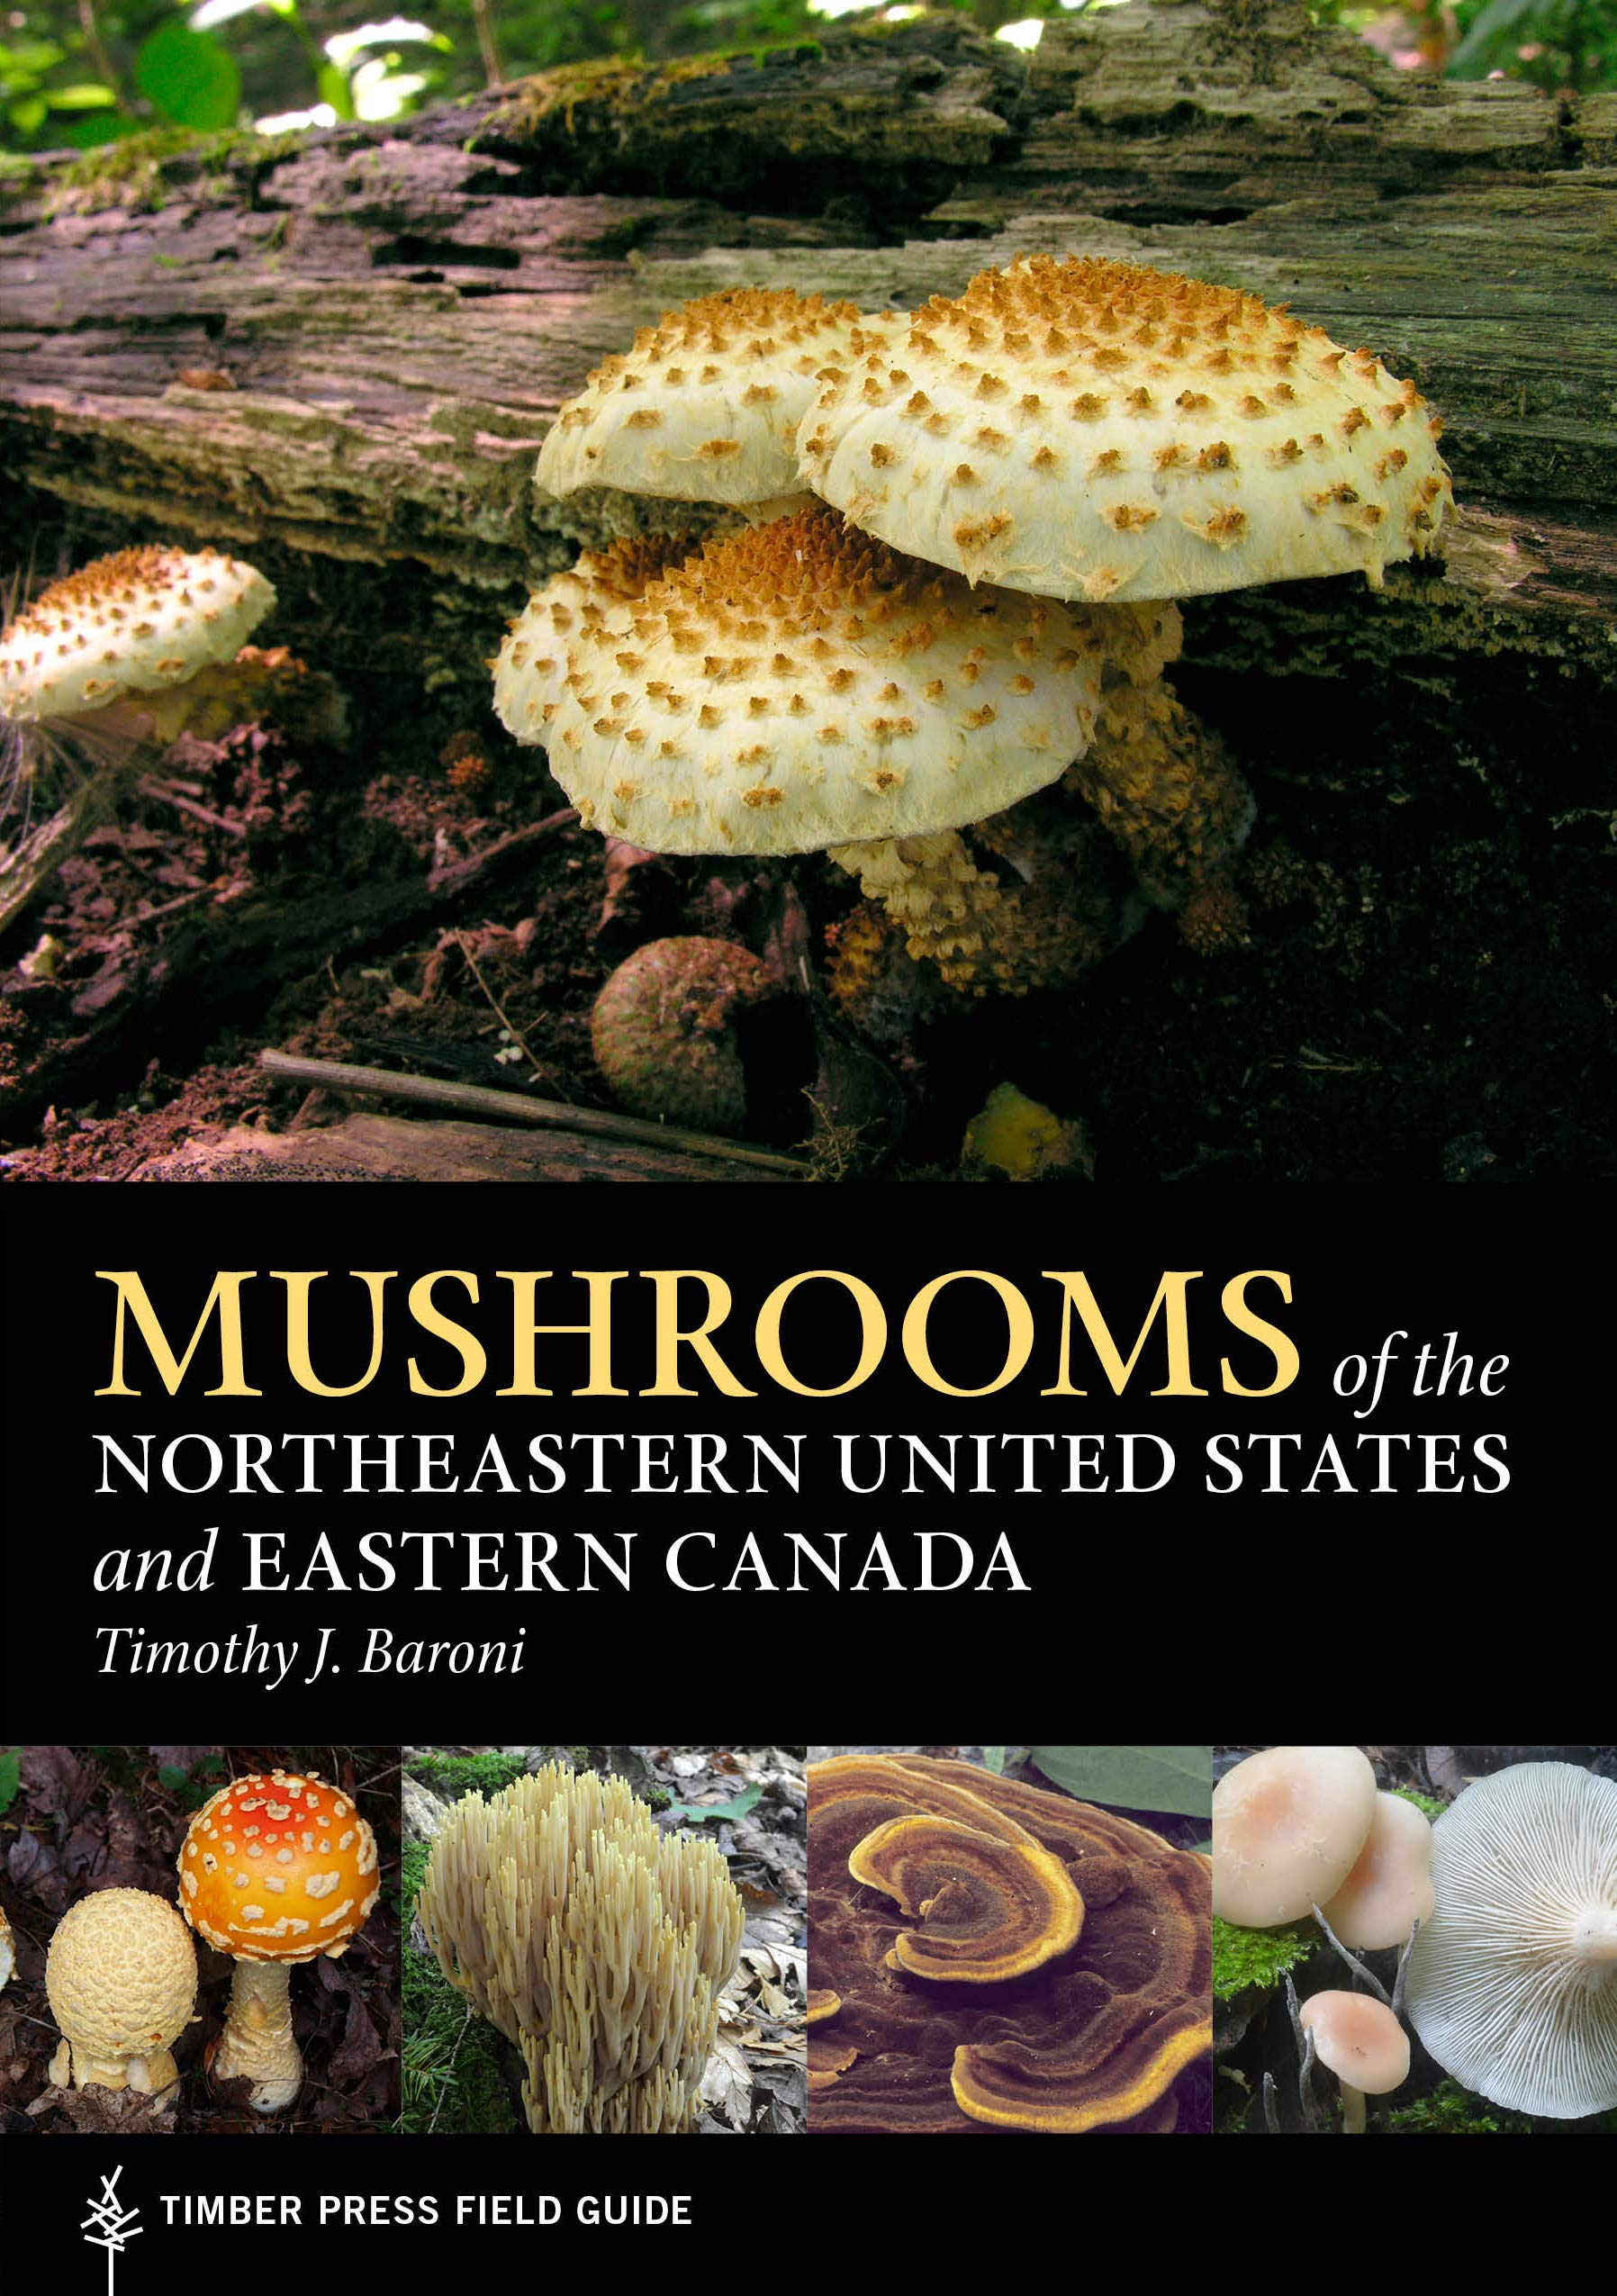 Image OfMushrooms Of The Northeastern United States And Eastern Canada (A Timber Press Field Guide)